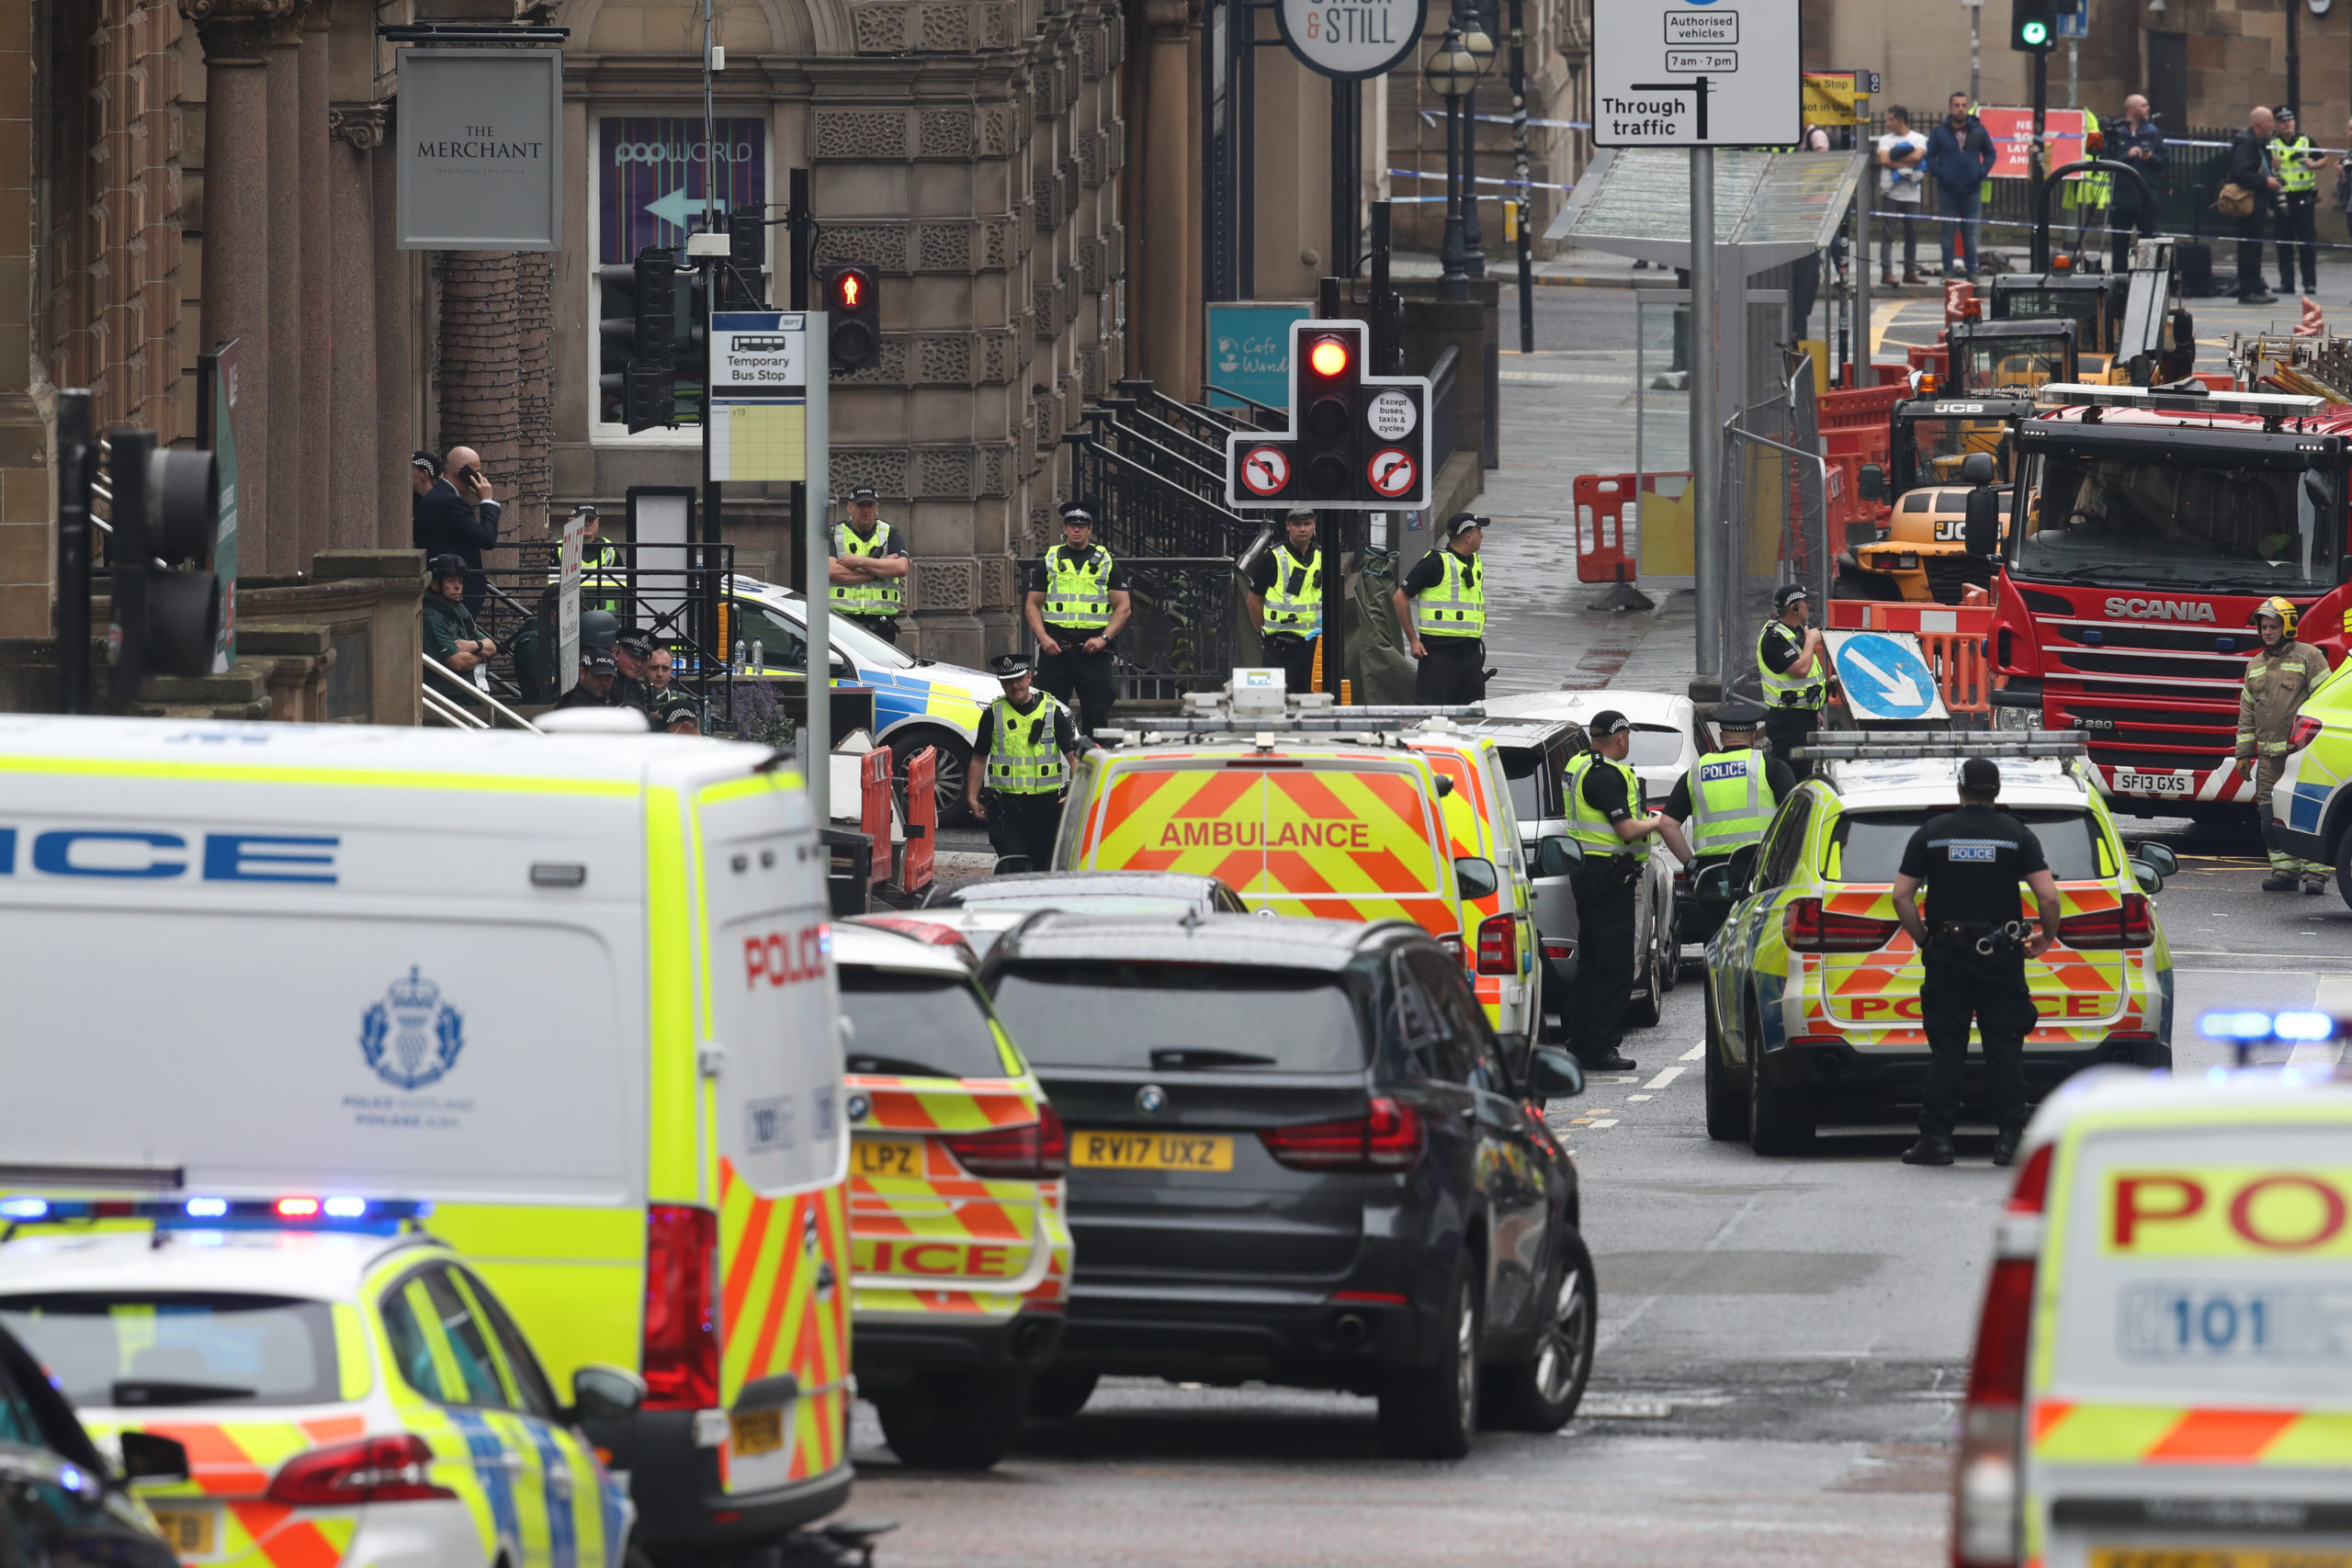 A heavy police presence at the scene in West George Street, Glasgow, where a man has been shot by an armed officer after another police officer was injured during an attack.